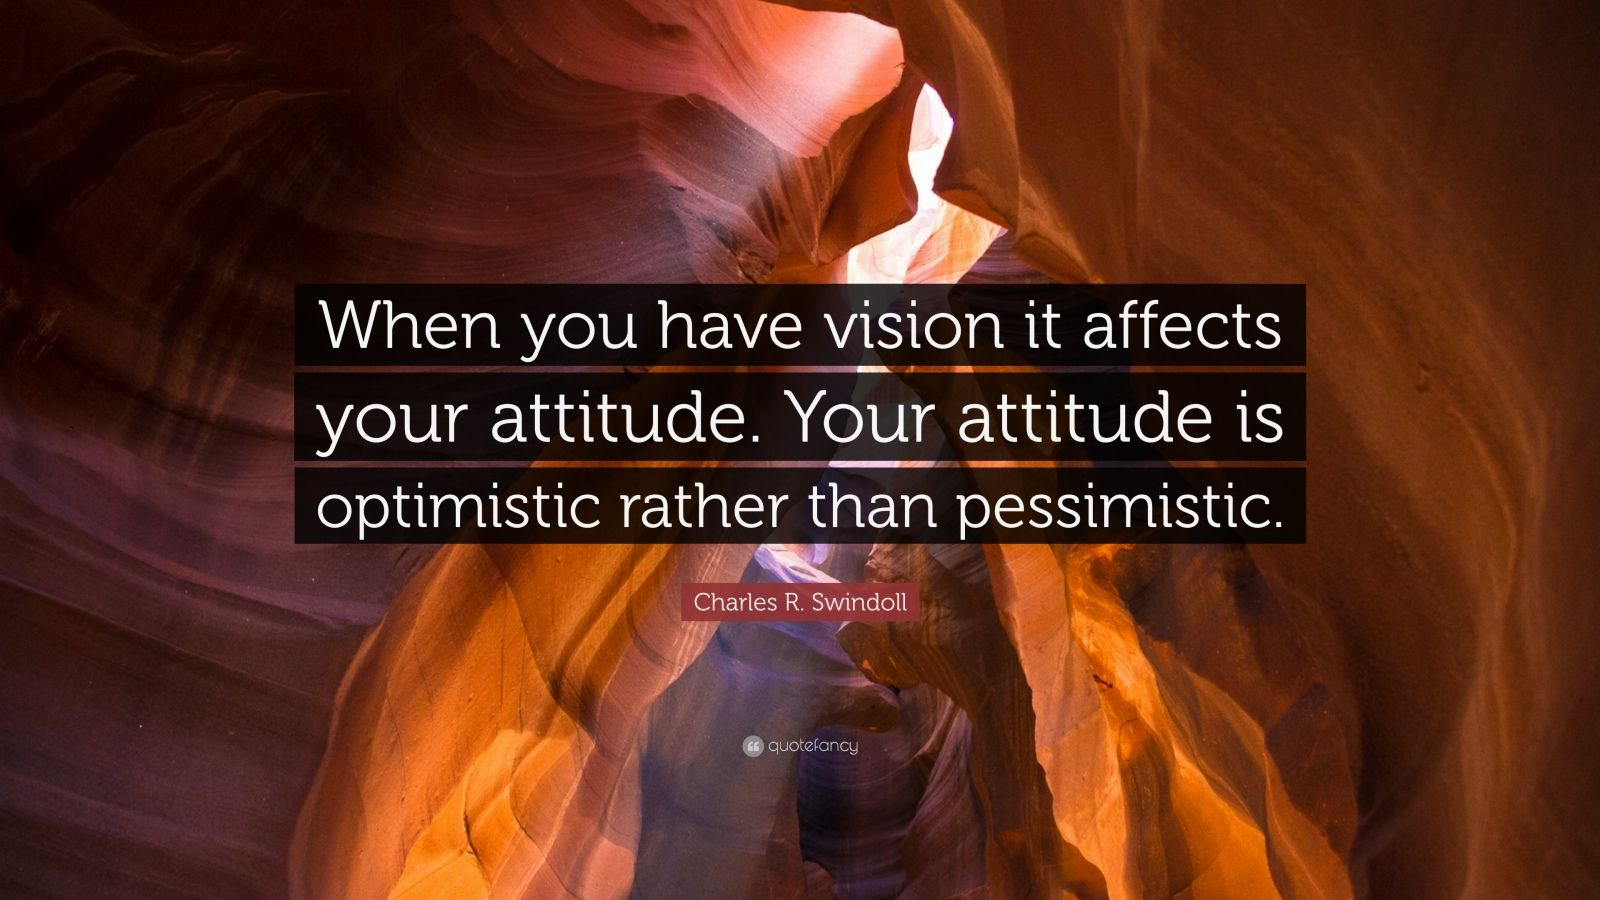 """Charles R. Swindoll Quote: """"When you have vision it affects your attitude. Your attitude is optimistic rather than pessimistic."""""""